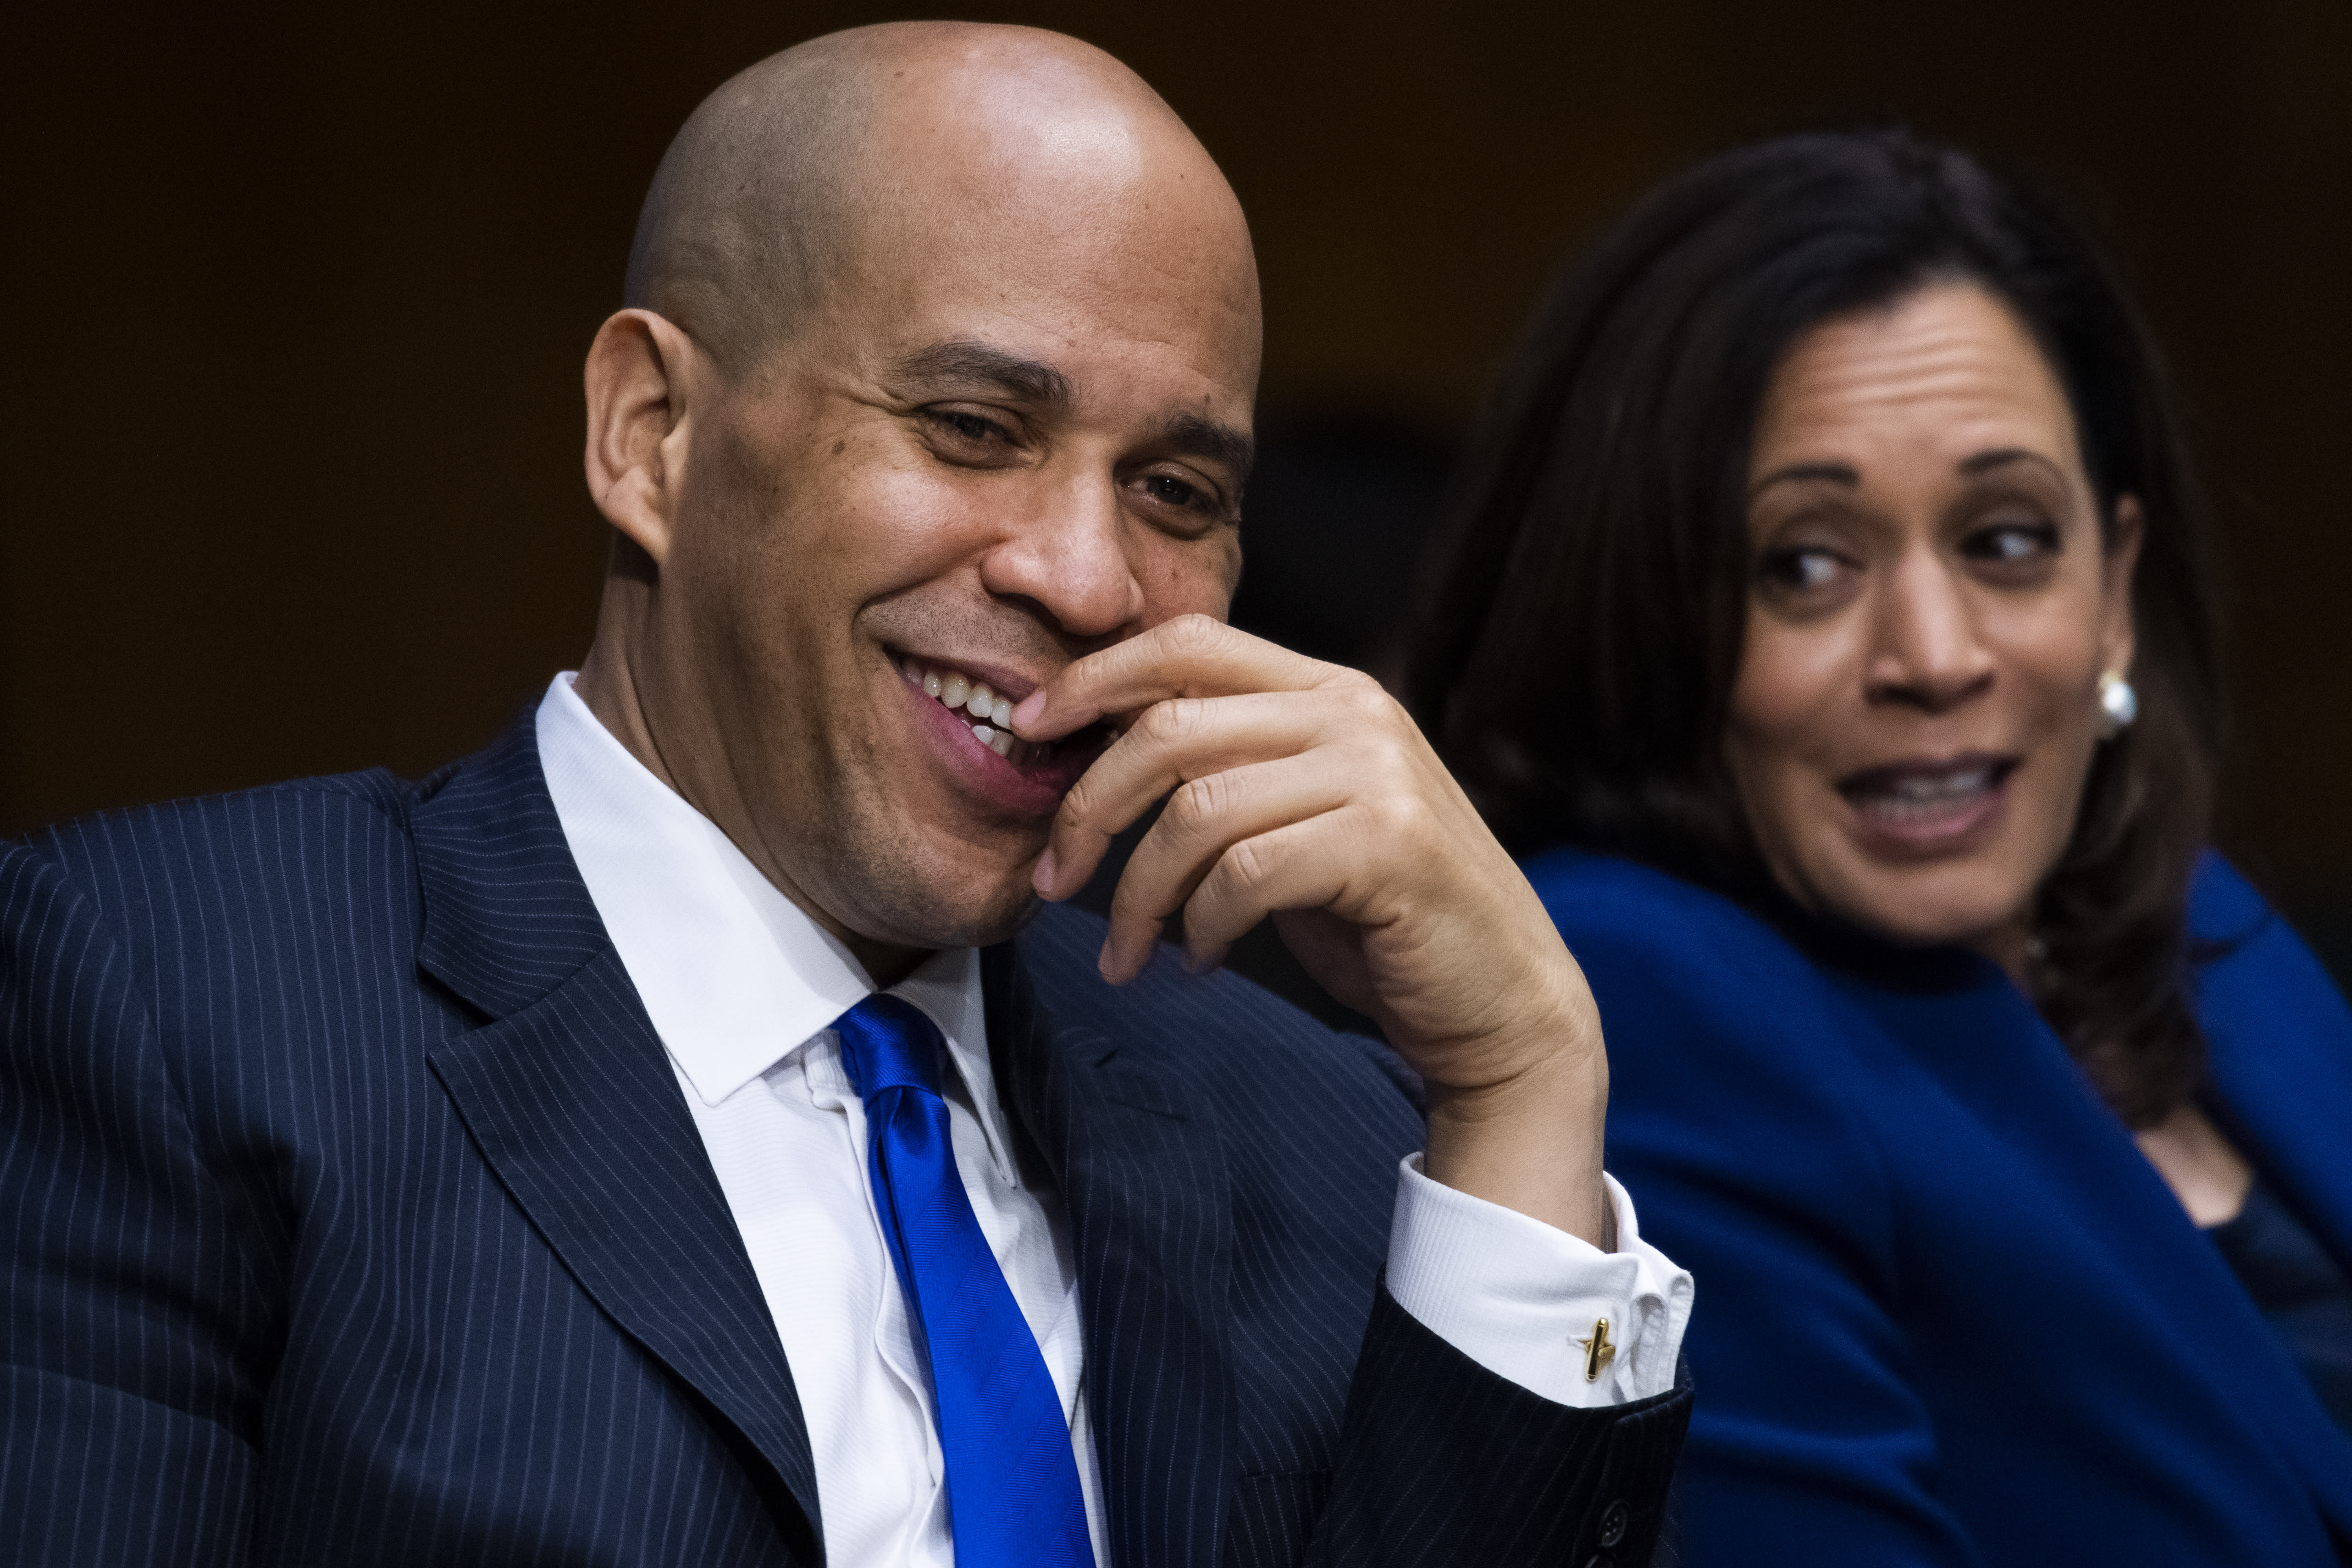 Sen. Cory Booker, D- N.J., speaks with Sen. Kamala Harris, D-Calif., during a Senate Judiciary Committee hearing on police use of force and community relations on on Capitol Hill, Tuesday, June 16, 2020 in Washington. (Tom Williams/CQ Roll Call/Pool via AP)